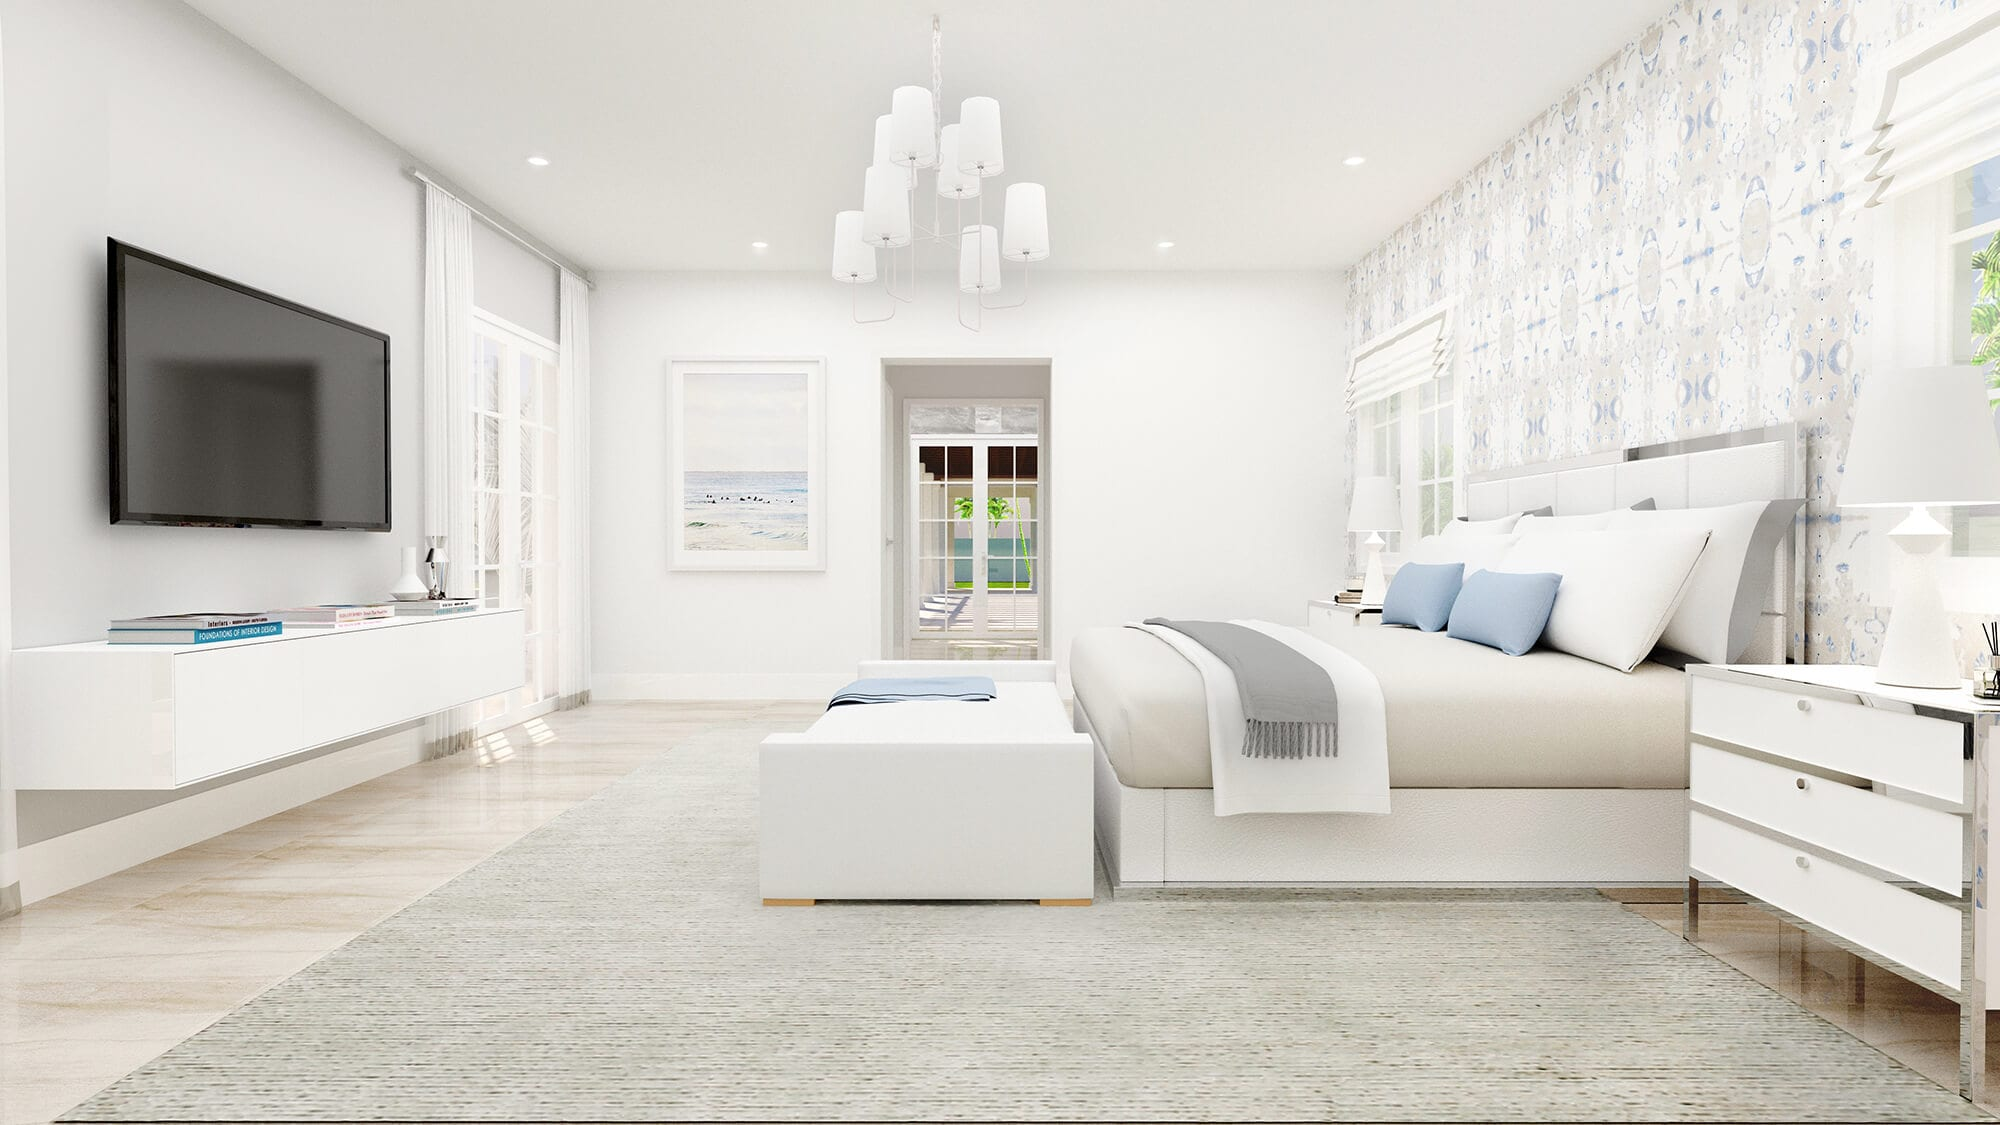 """Interiors by Maite Granda. """"Nominated among the top 15 interior design firms in Miami and New York."""